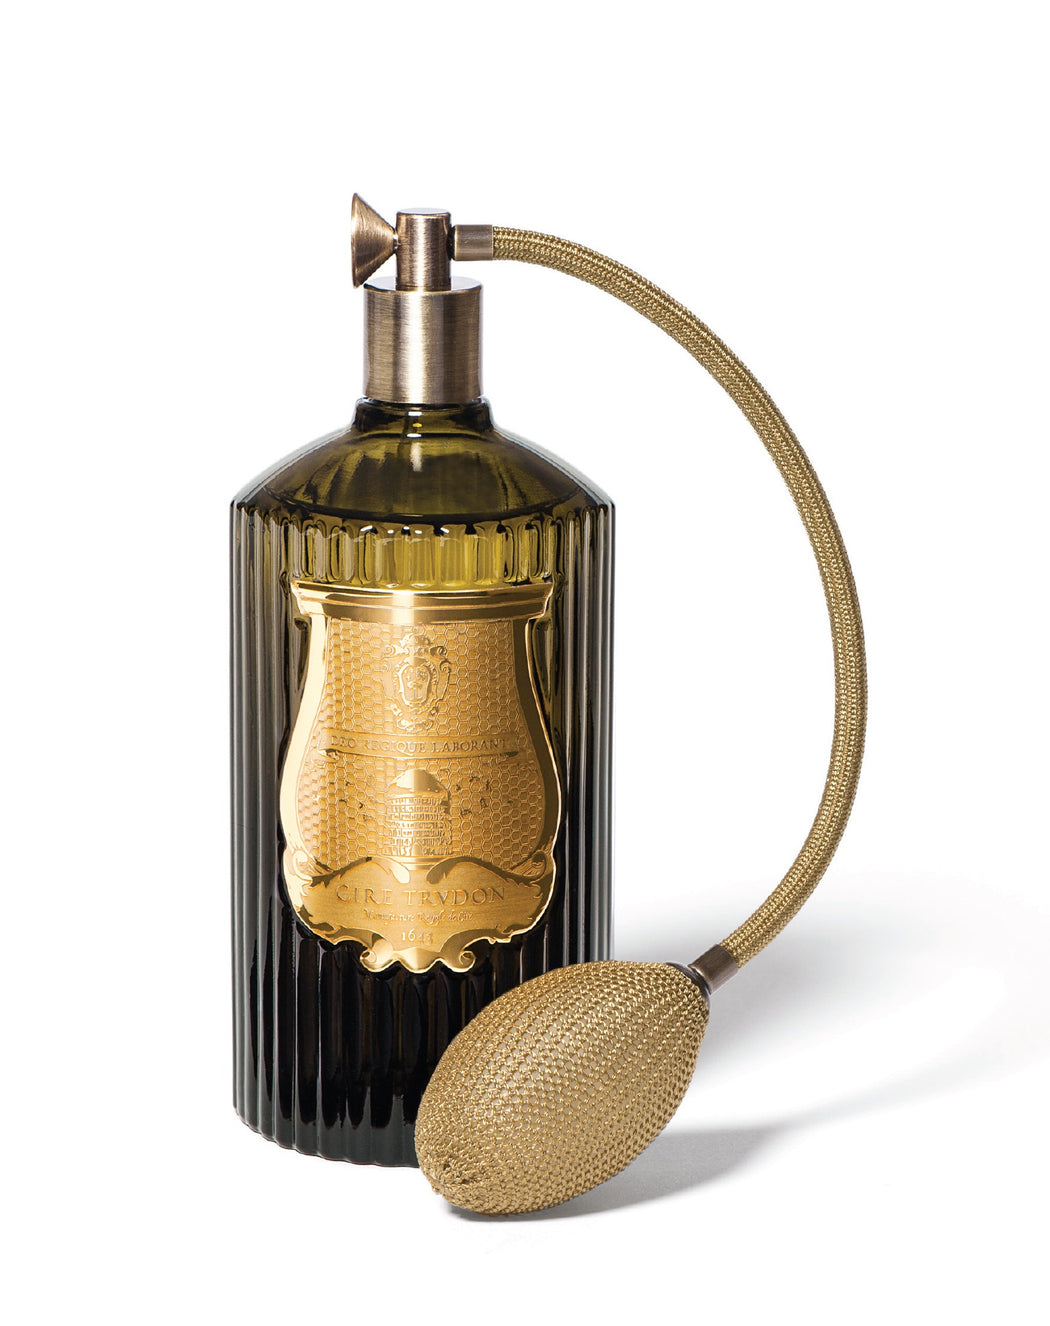 CIRE TRUDON ROOM SPRAY Ernesto